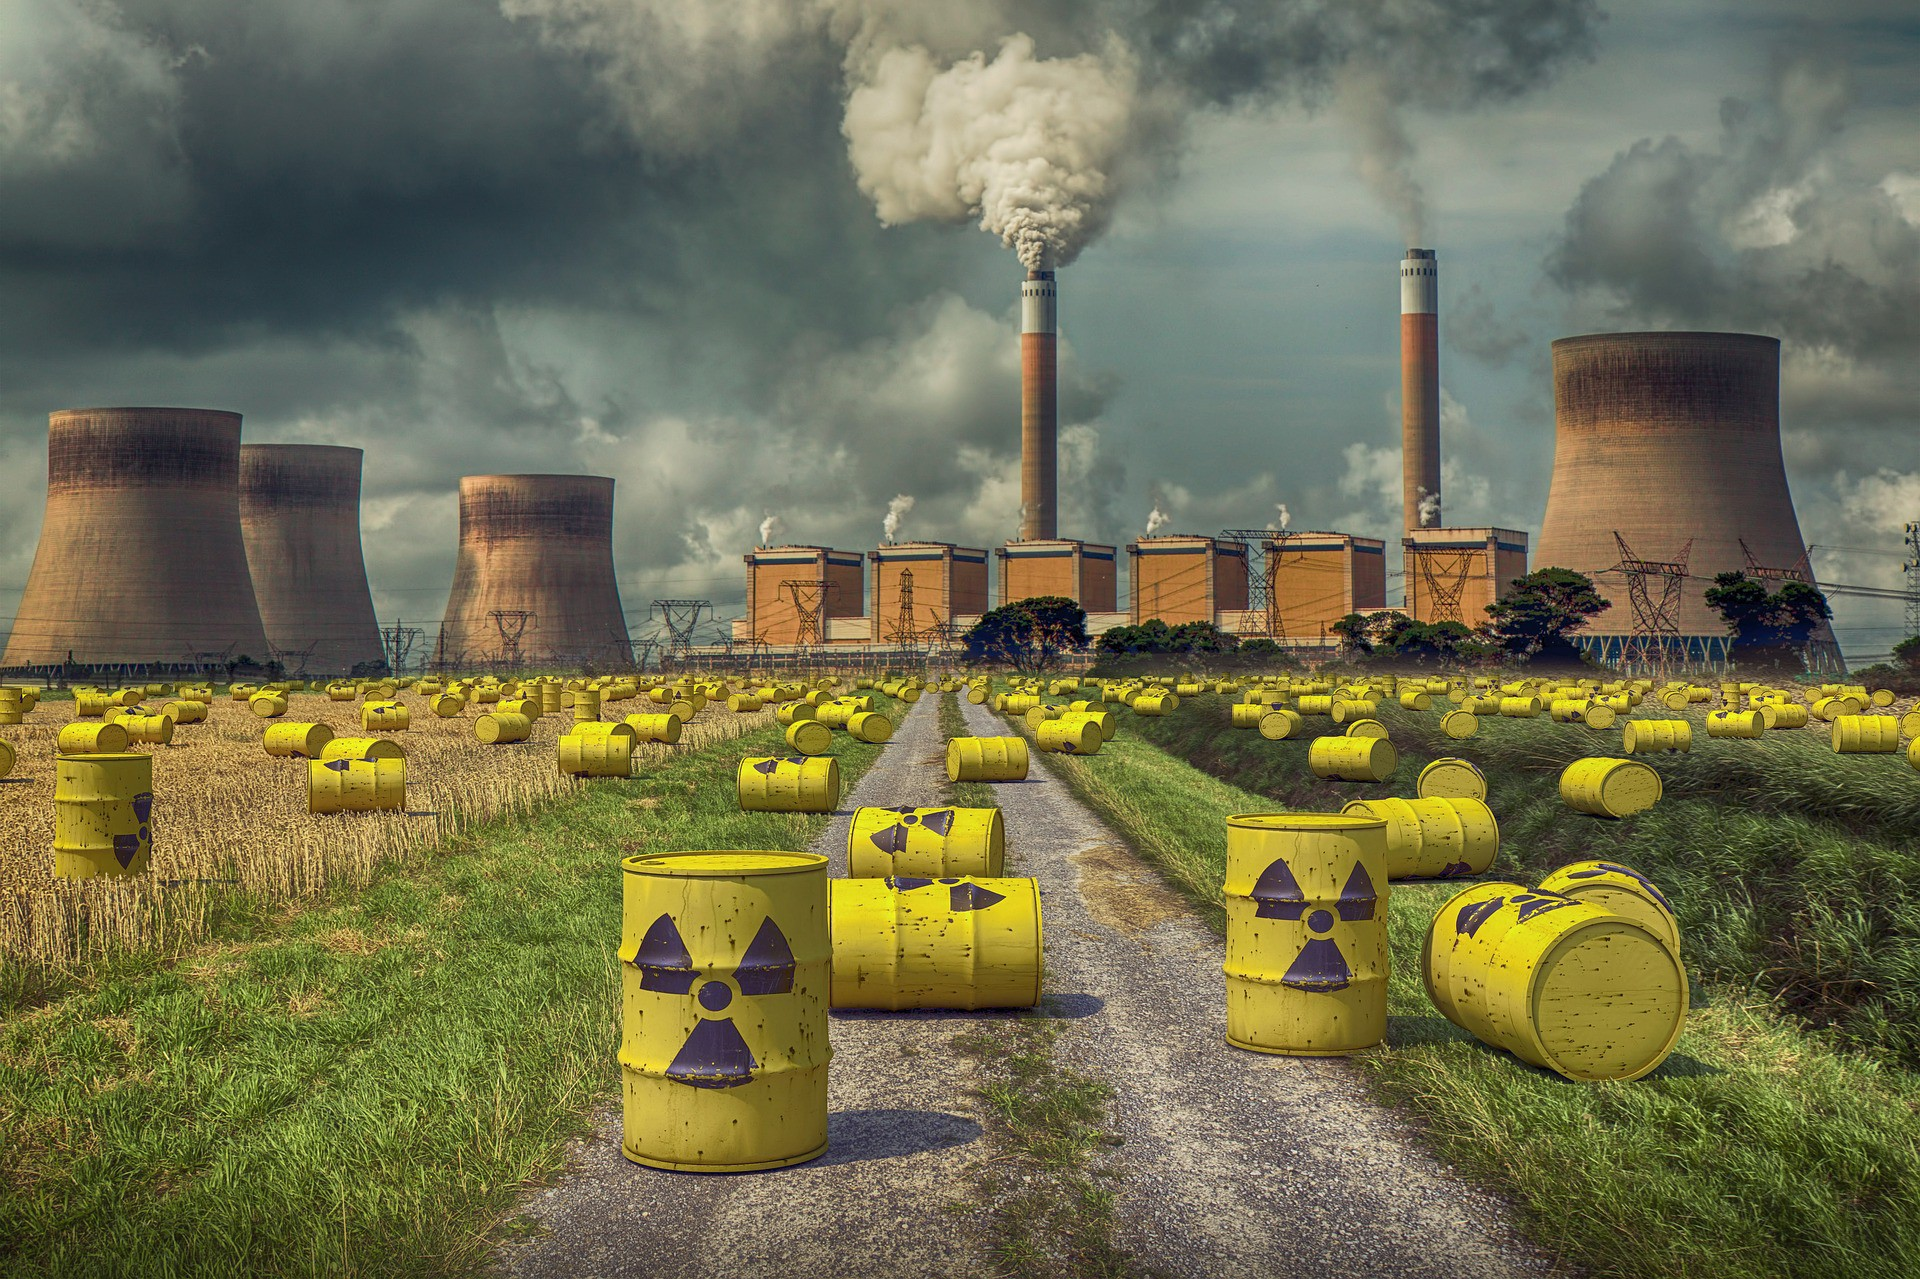 Yellow barrels with the biohazard symbol on them in front of a nuclear power plant.